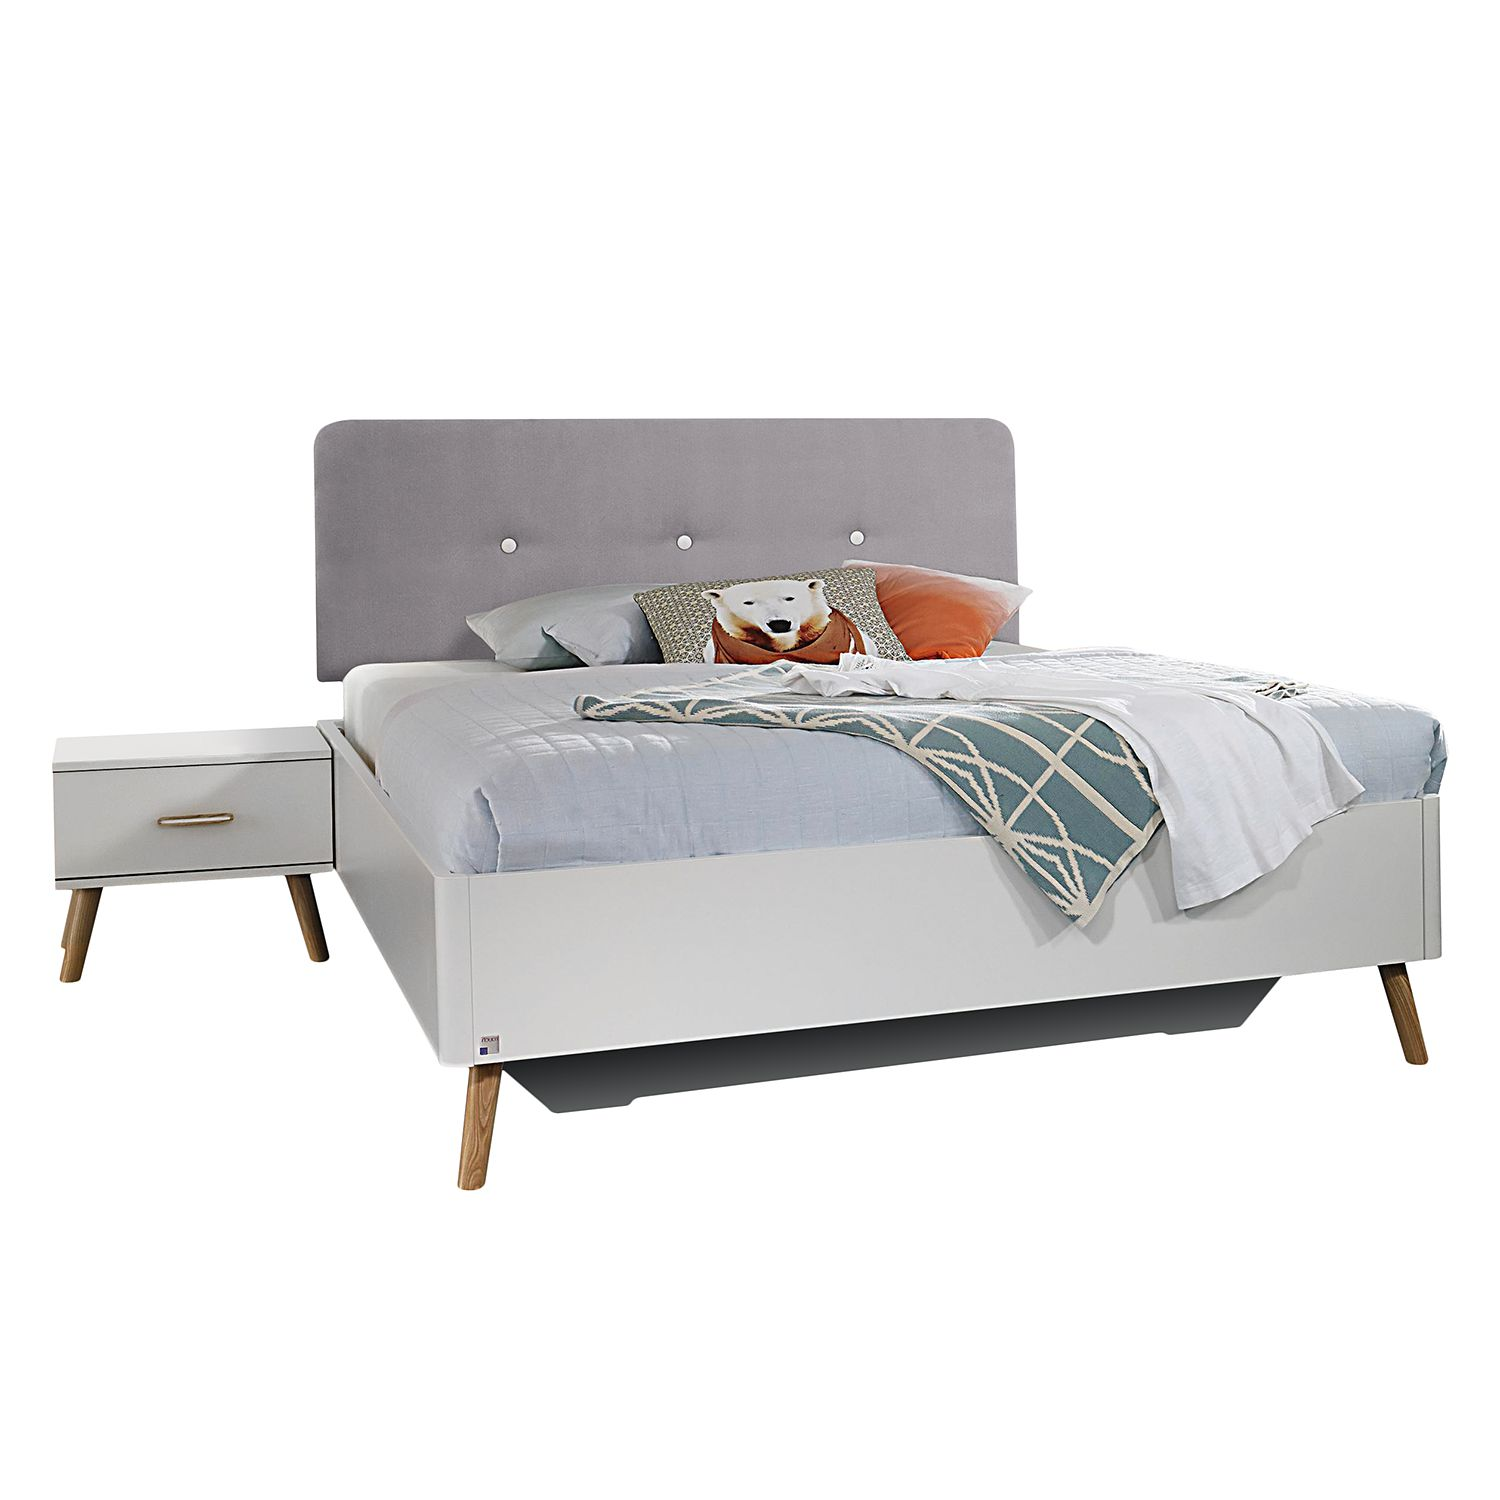 goedkoop Bed Annett wit 140 x 200cm Rauch Packs